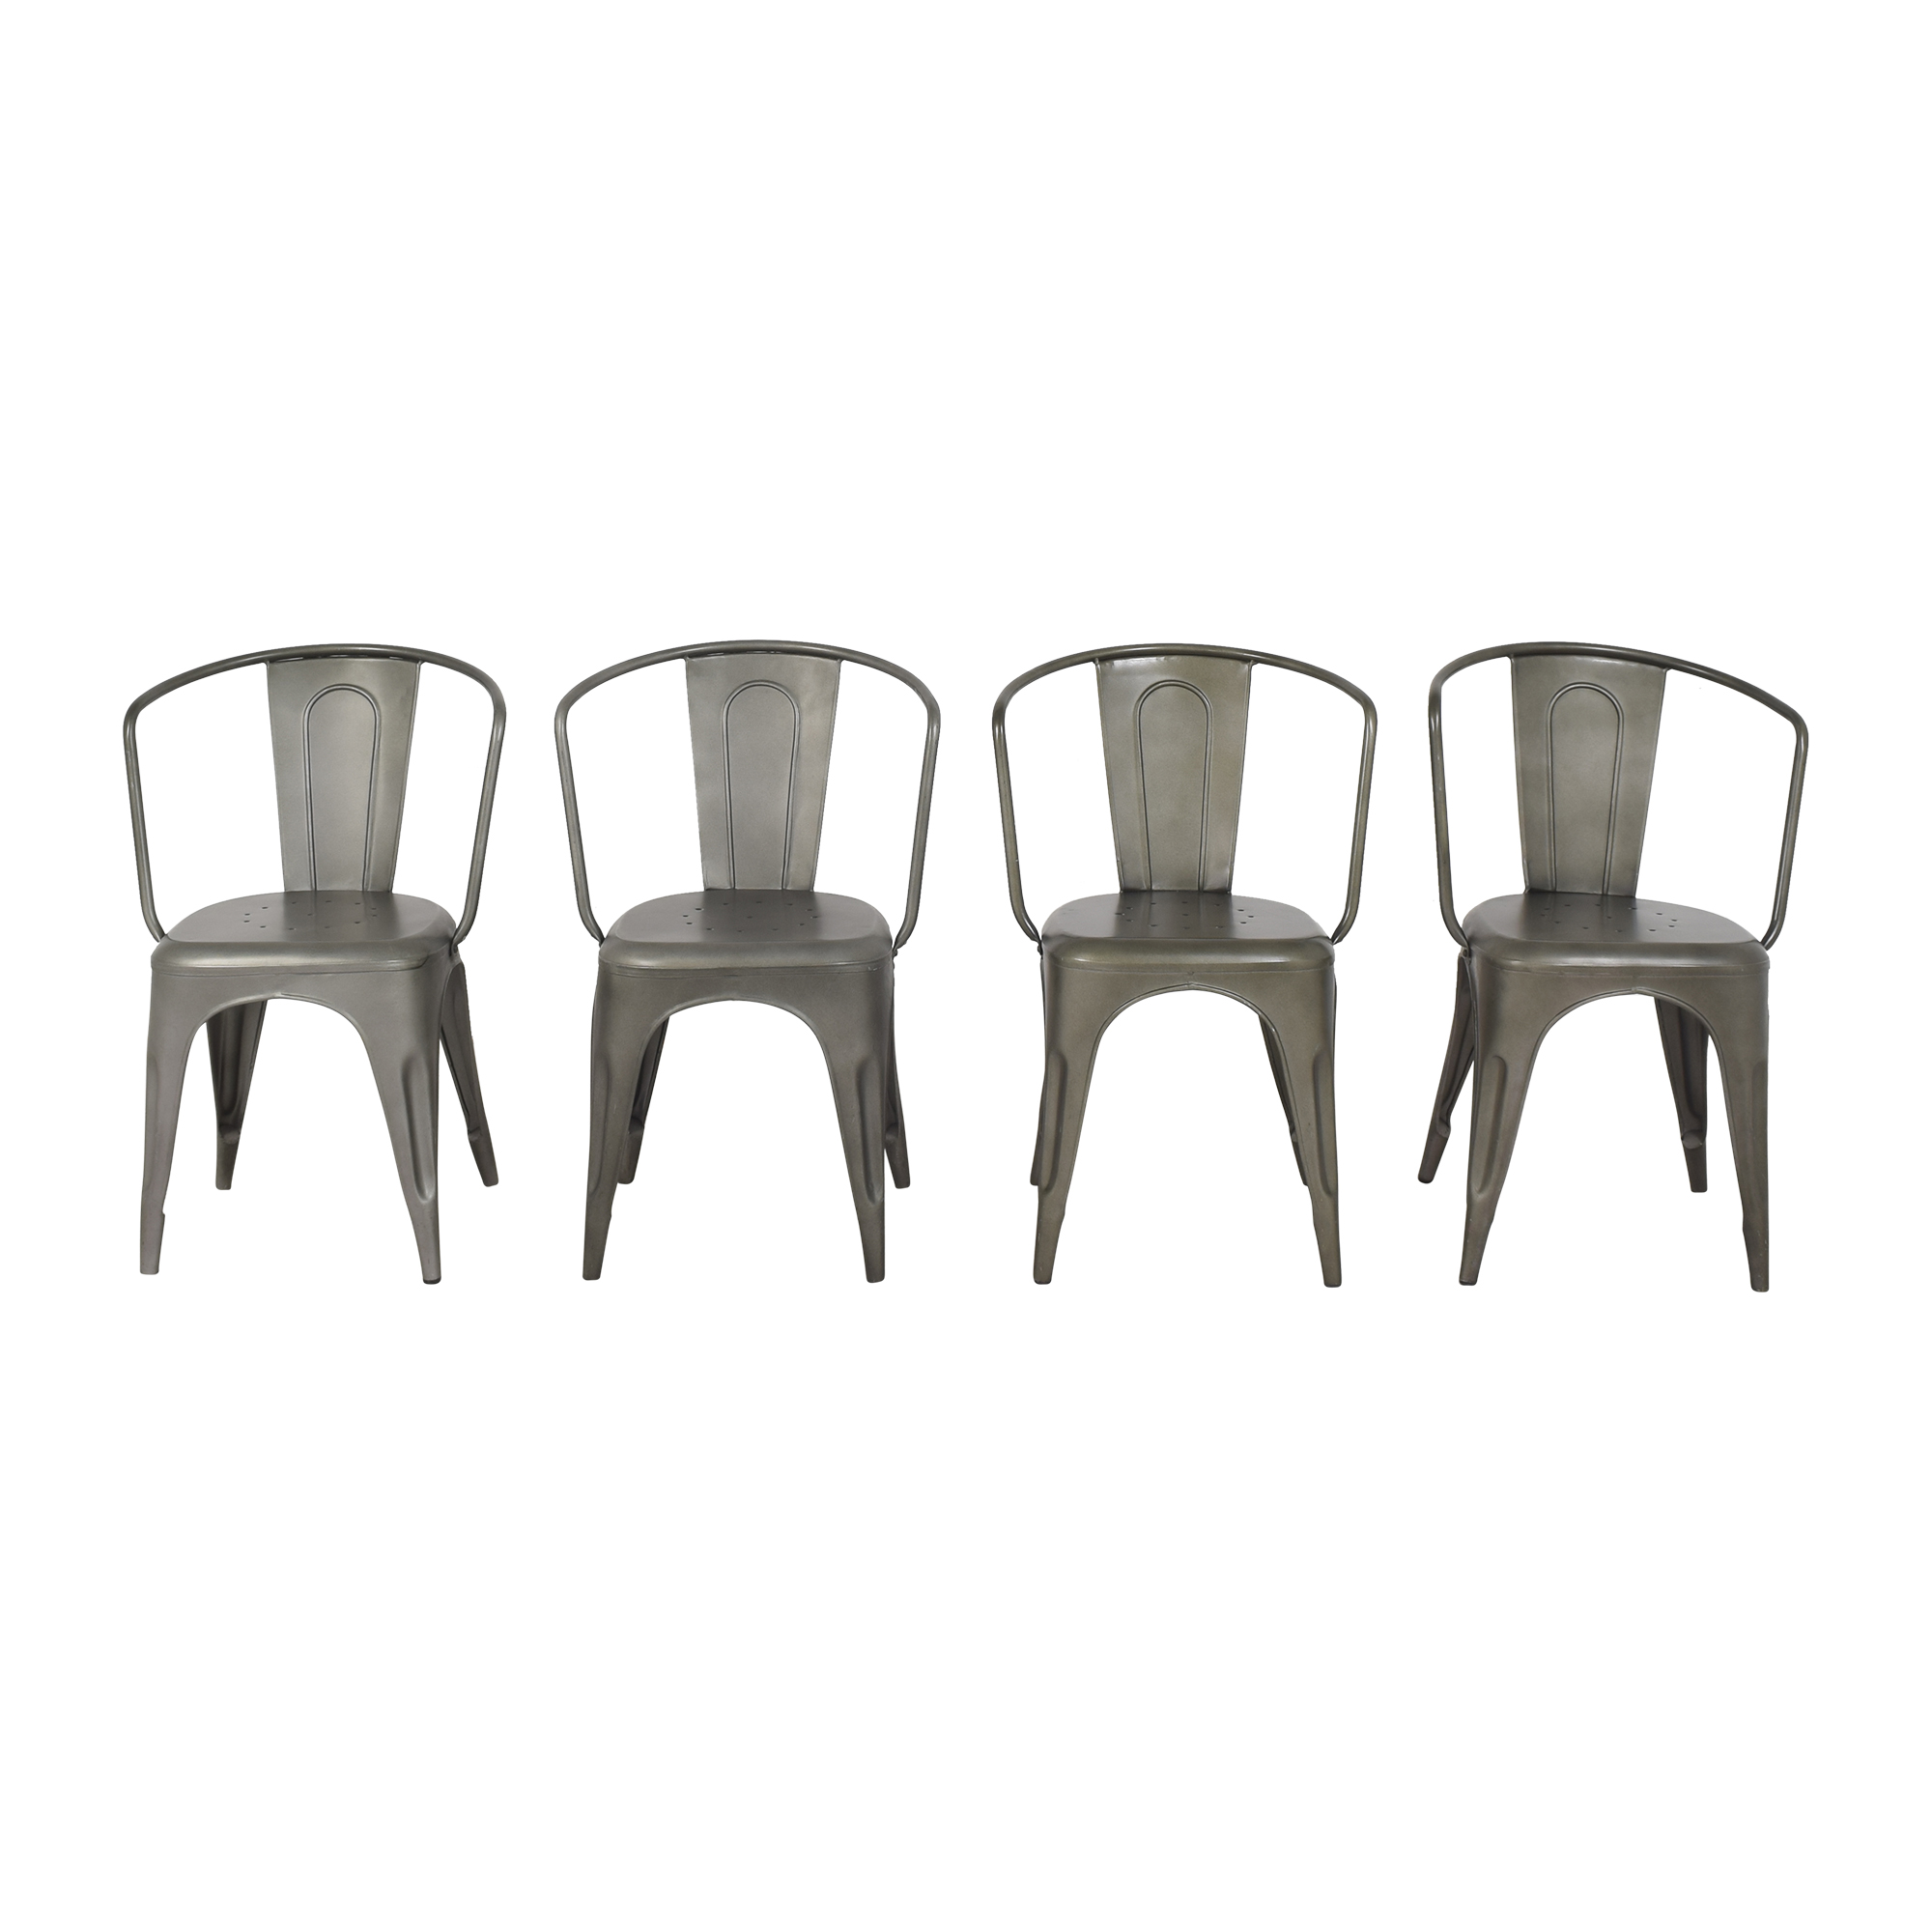 Restoration Hardware Marcel Modern Armchairs / Chairs